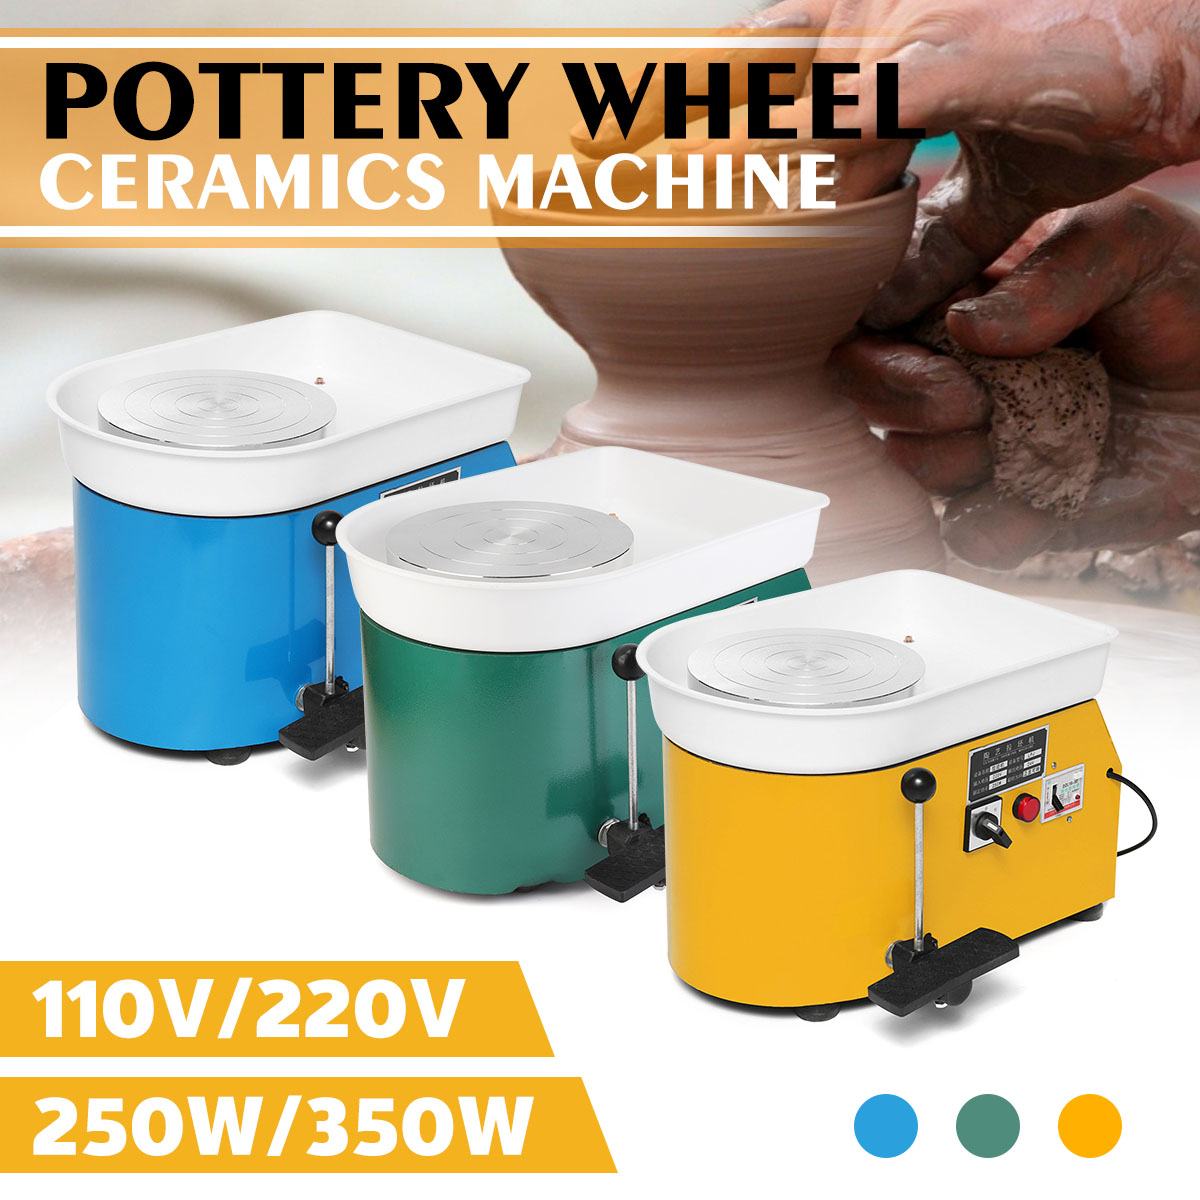 Pottery Forming Machine 250W Electric Pottery Wheel DIY Clay Tool With Tray For Ceramic Work Ceramics